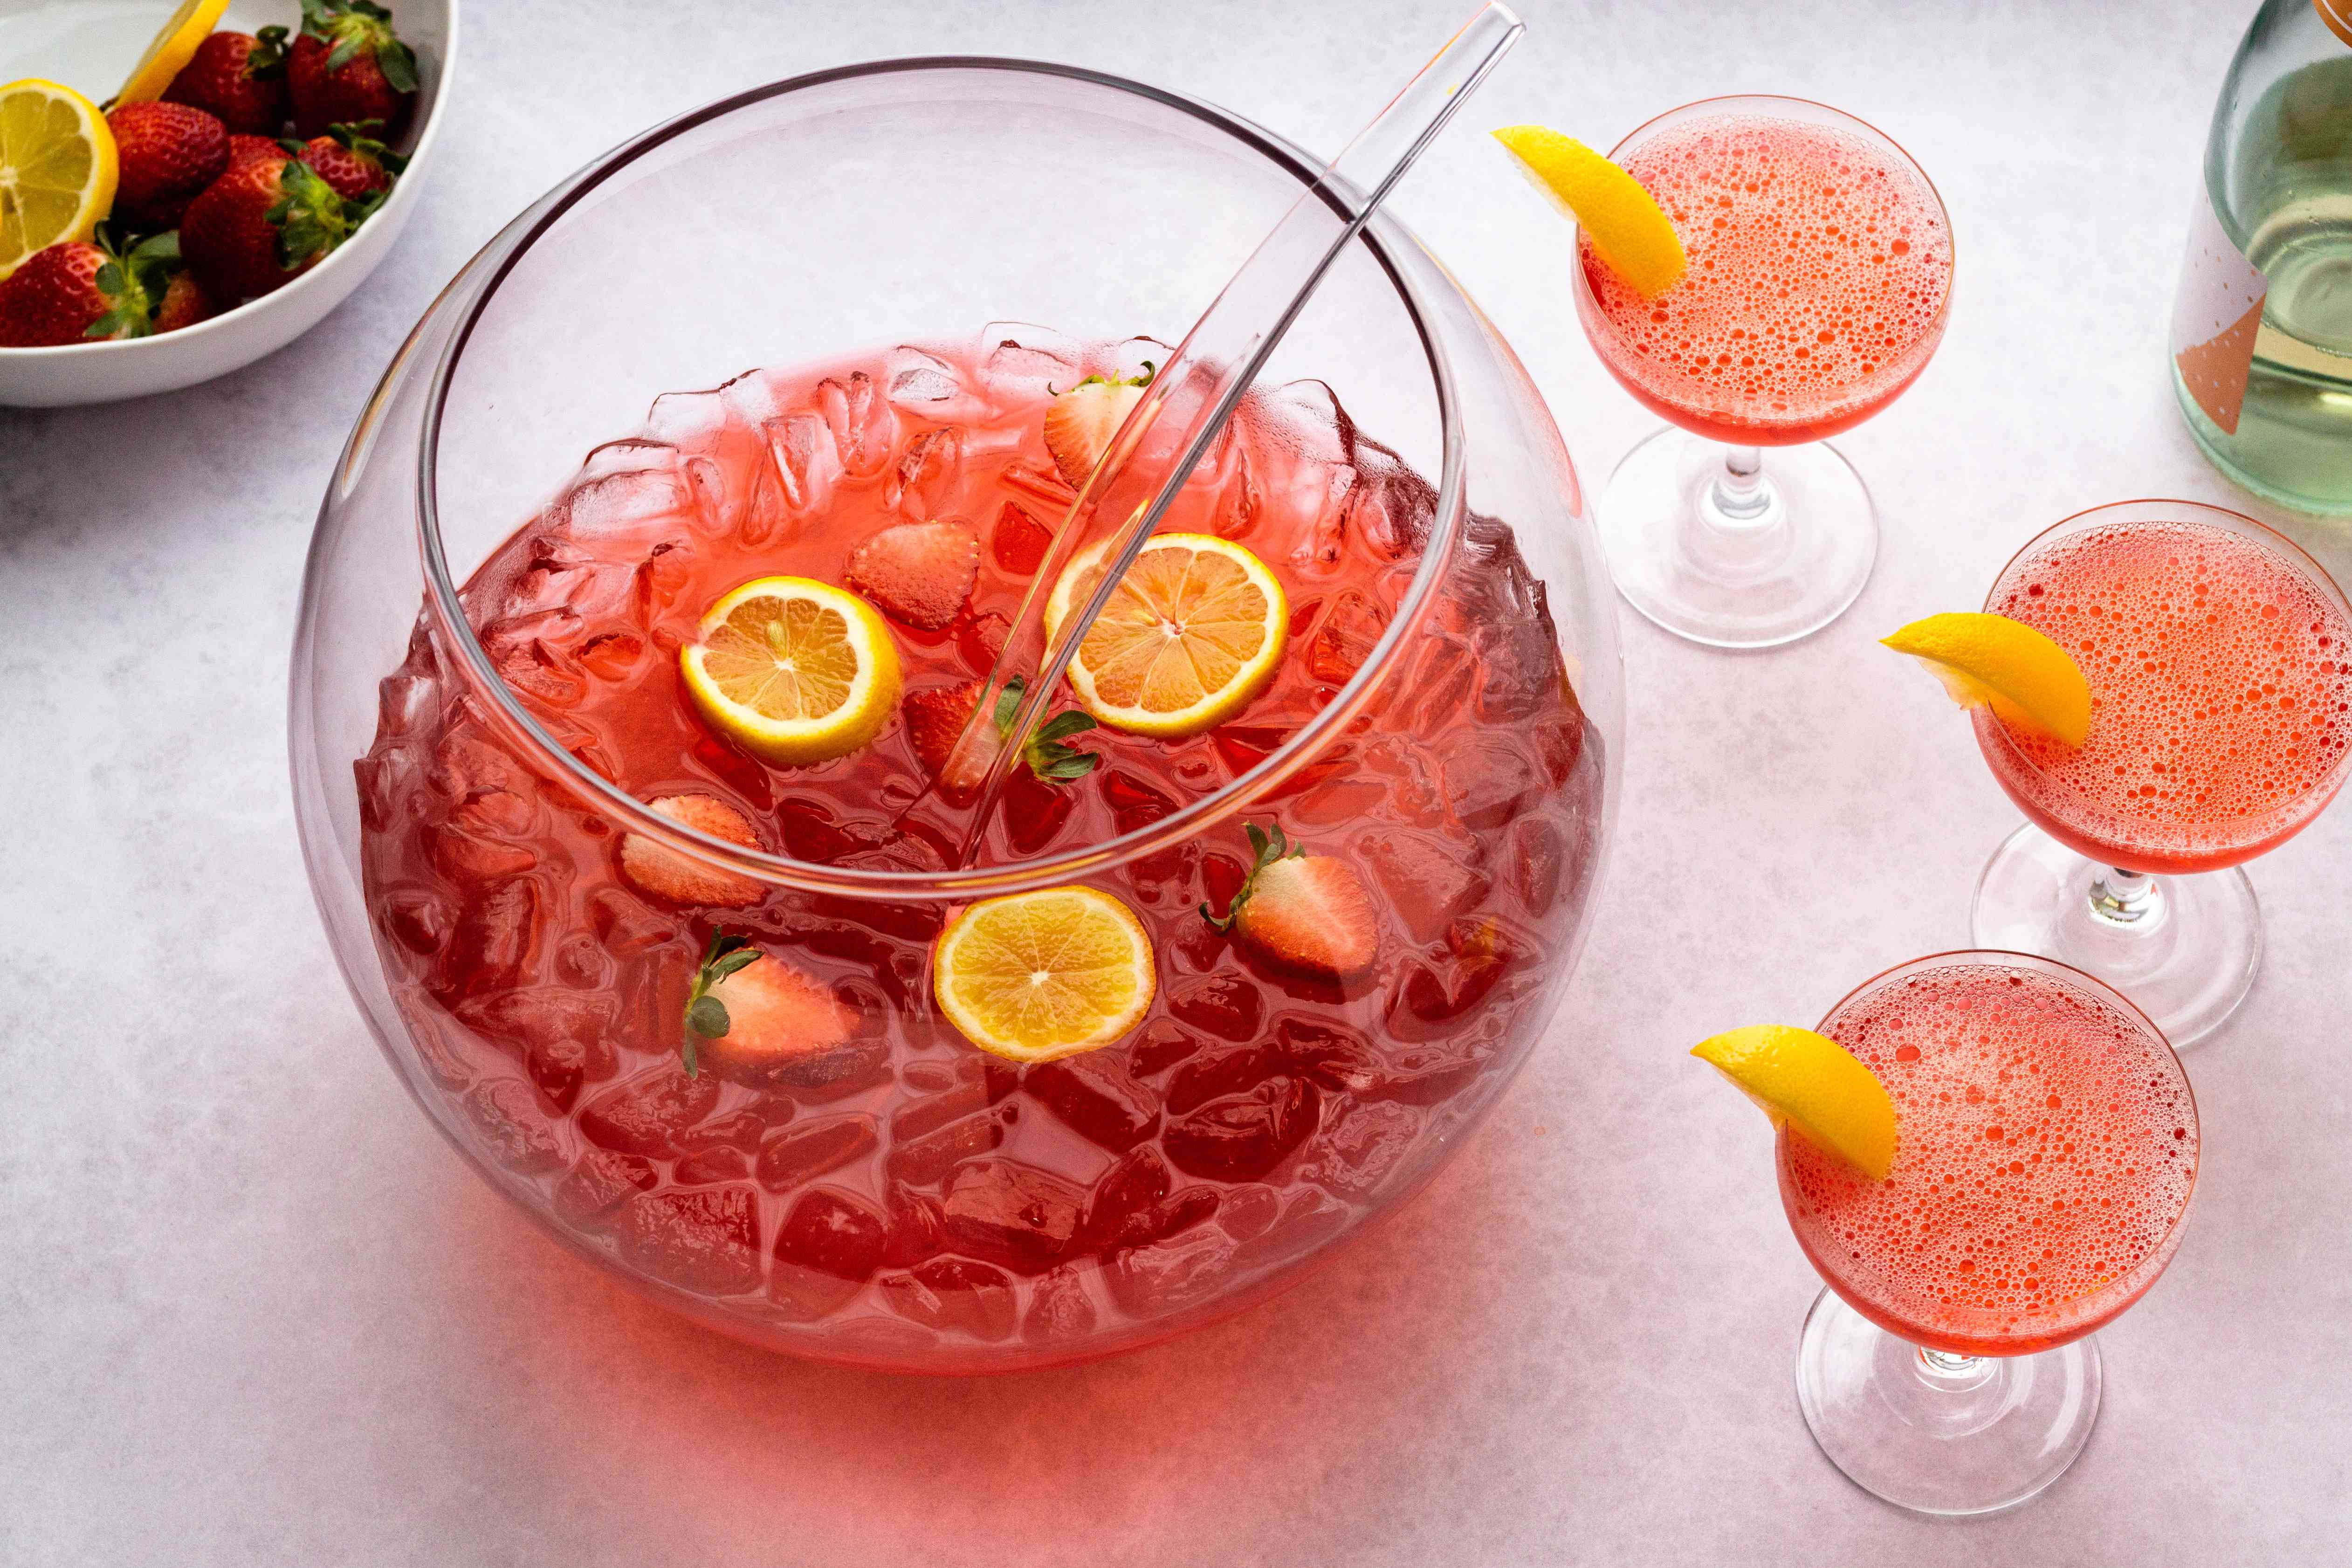 Jim Beam Fruit Punch, Garnish each glass with a strawberry or lemon twist on the rim